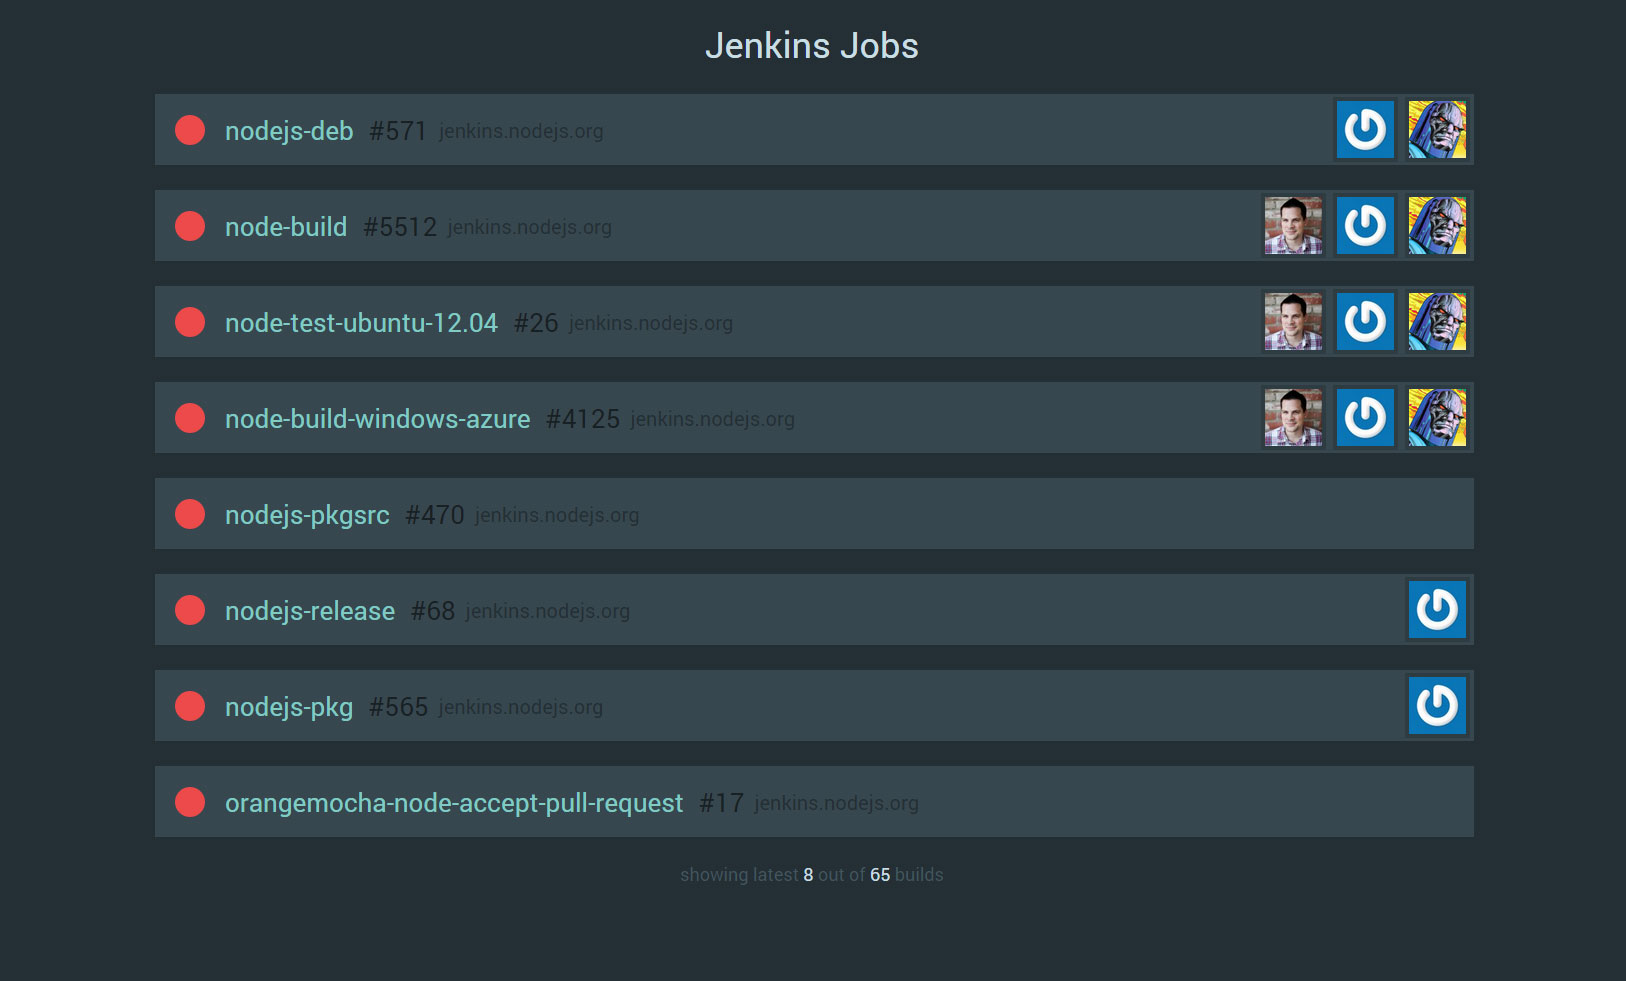 GitHub - arcturial/jenkins-dash: Jenkins Overview Dashboard